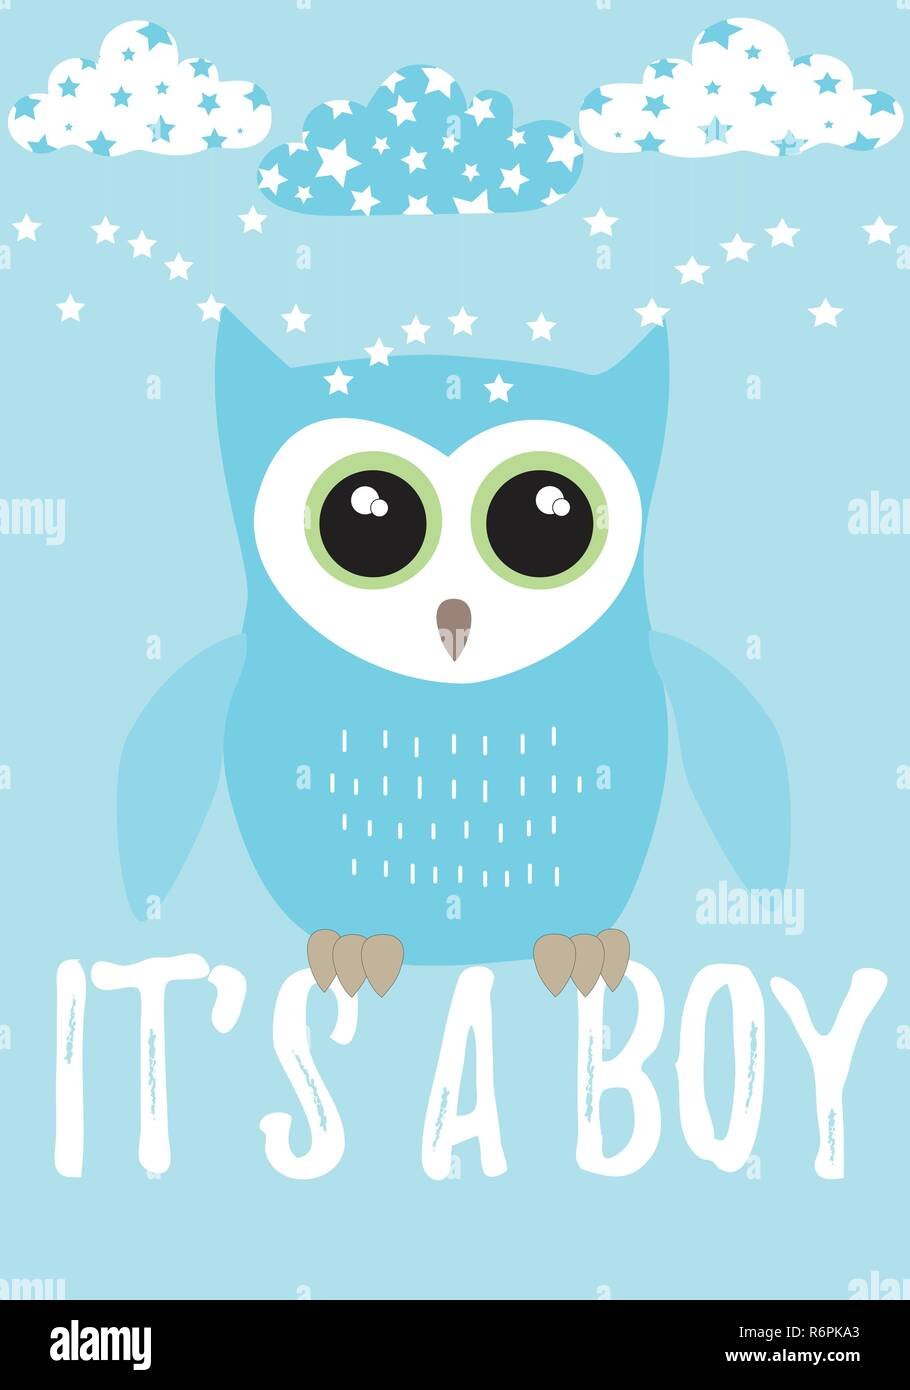 Owl It's a boy card in pastel blue with black,white and green colors palette vector illustration template on a blue background with clouds and star Stock Vector